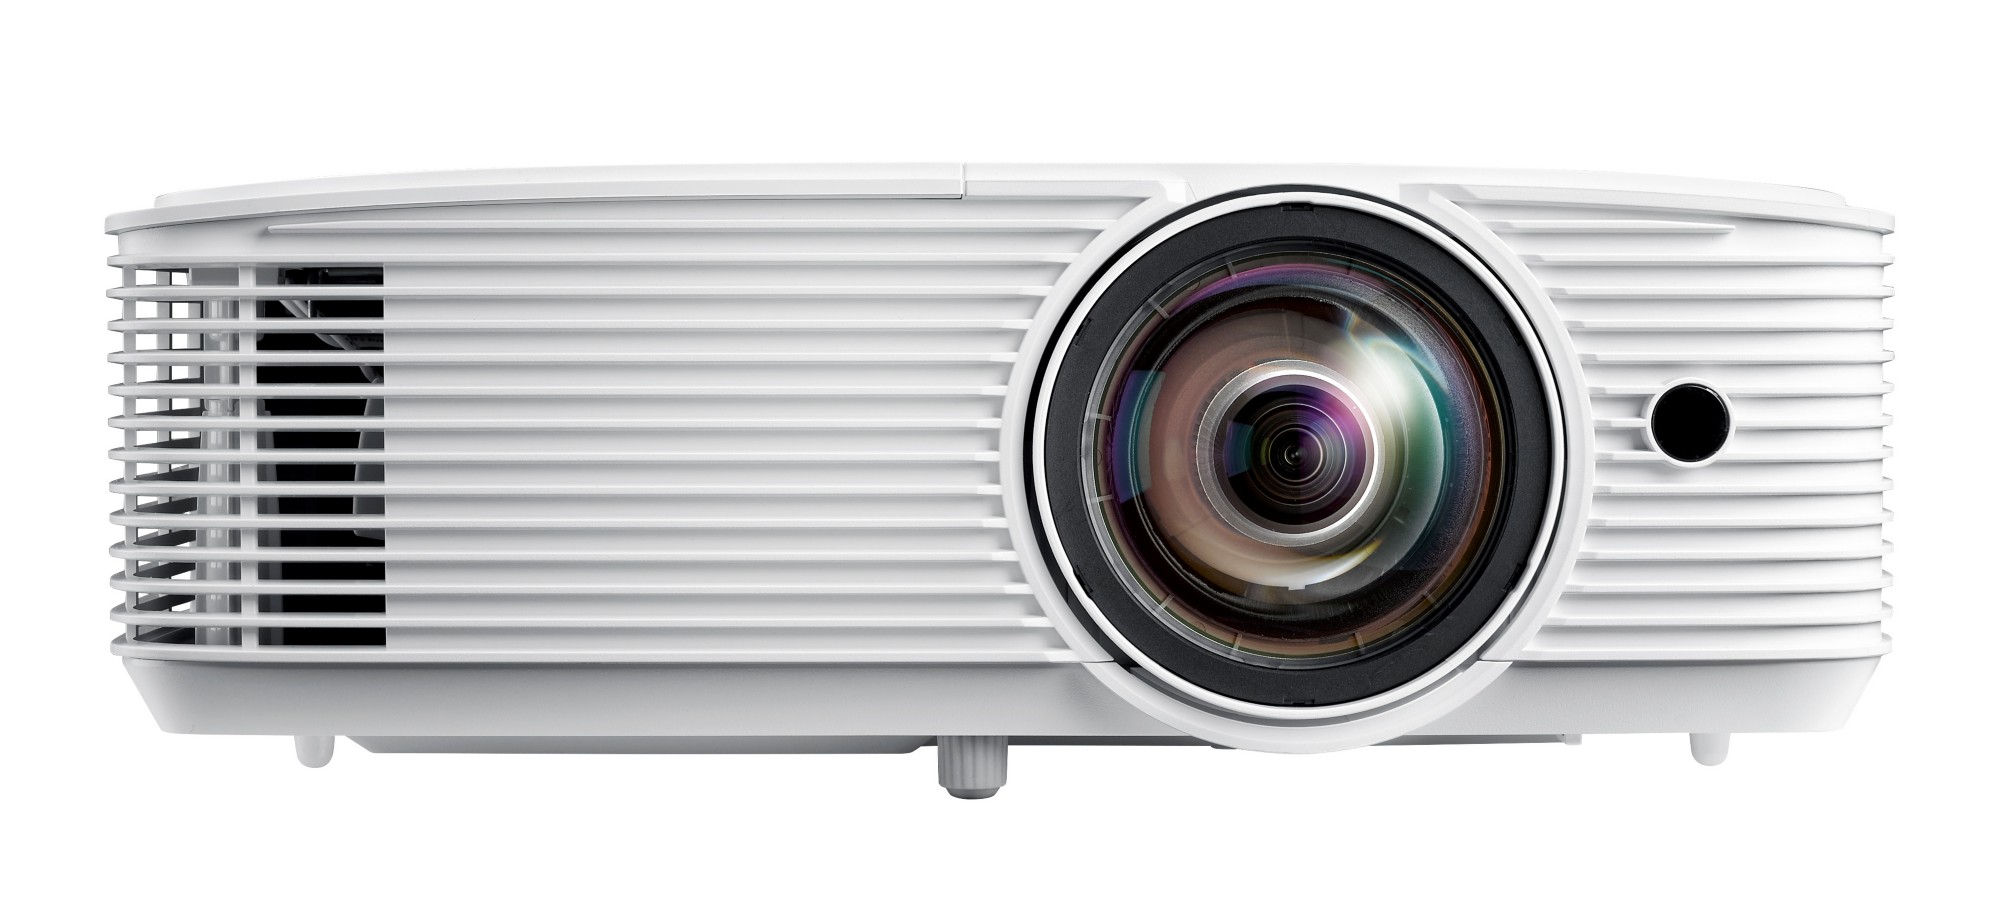 Optoma W318STe data projector 3800 ANSI lumens DLP WXGA (1280x800) 3D Desktop projector White